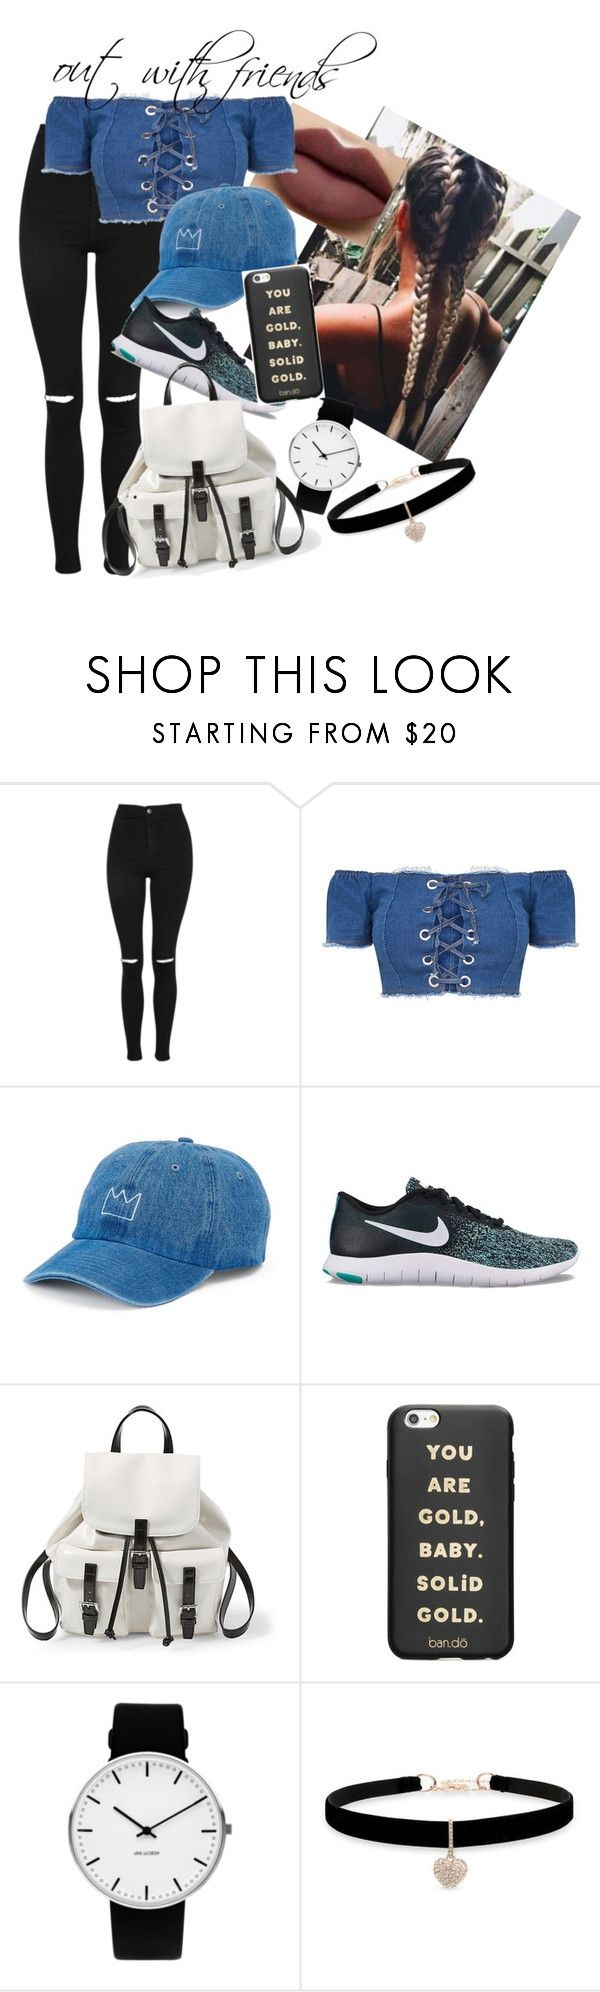 """""""out with the squad"""" by shan-zie on Polyvore featuring Morphe, Topshop, SO, NIKE, Steve Madden, ban.do, Rosendahl and Betsey Johnson"""